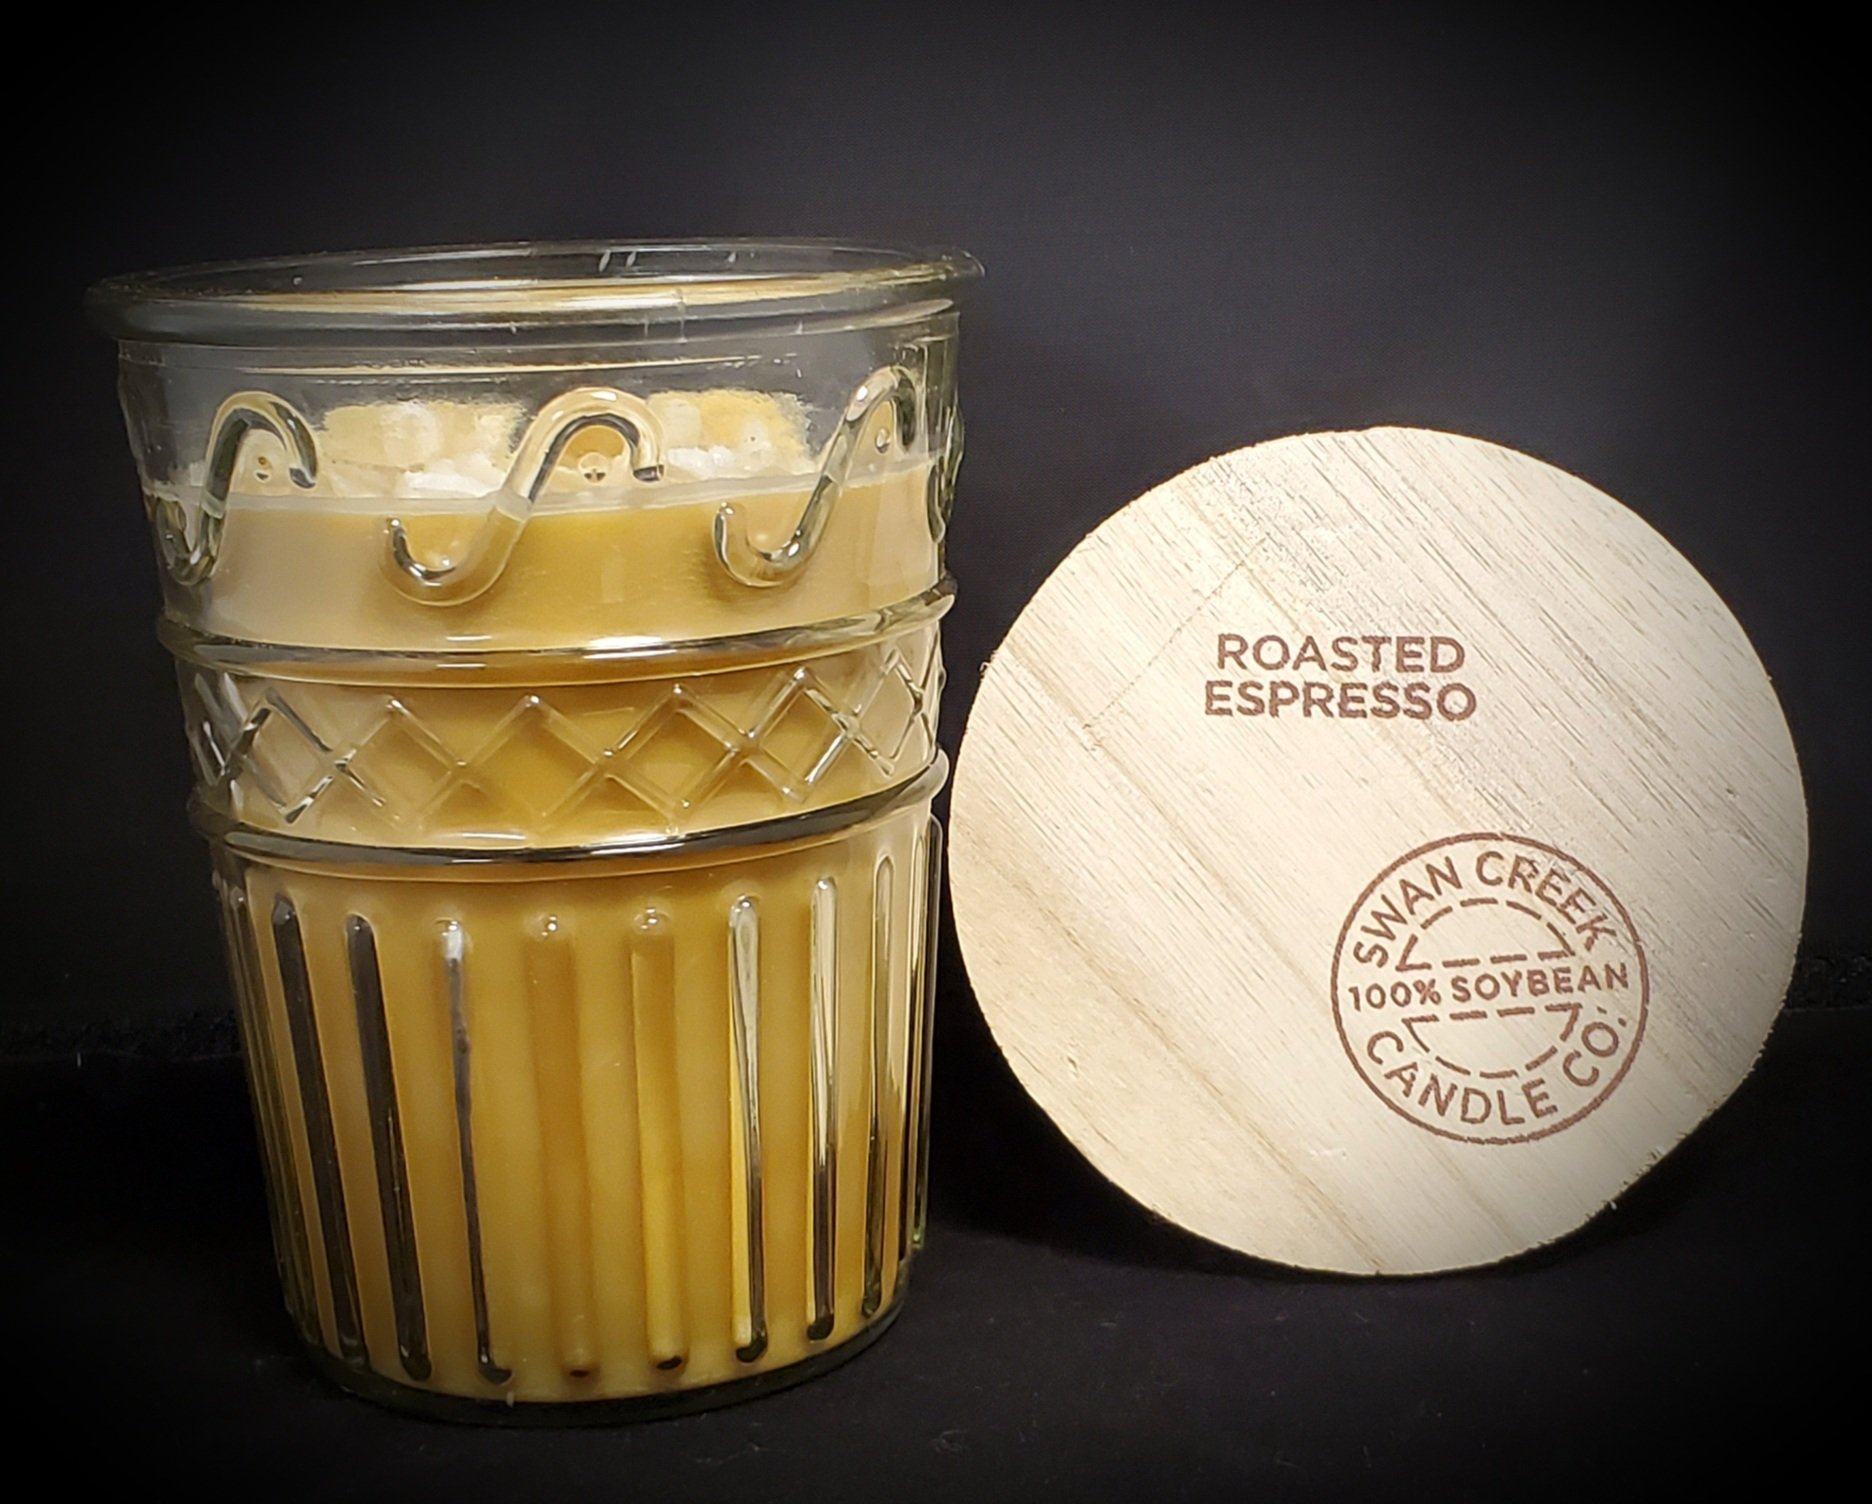 Swan Creek Candles Timeless Jar - Roasted Espresso